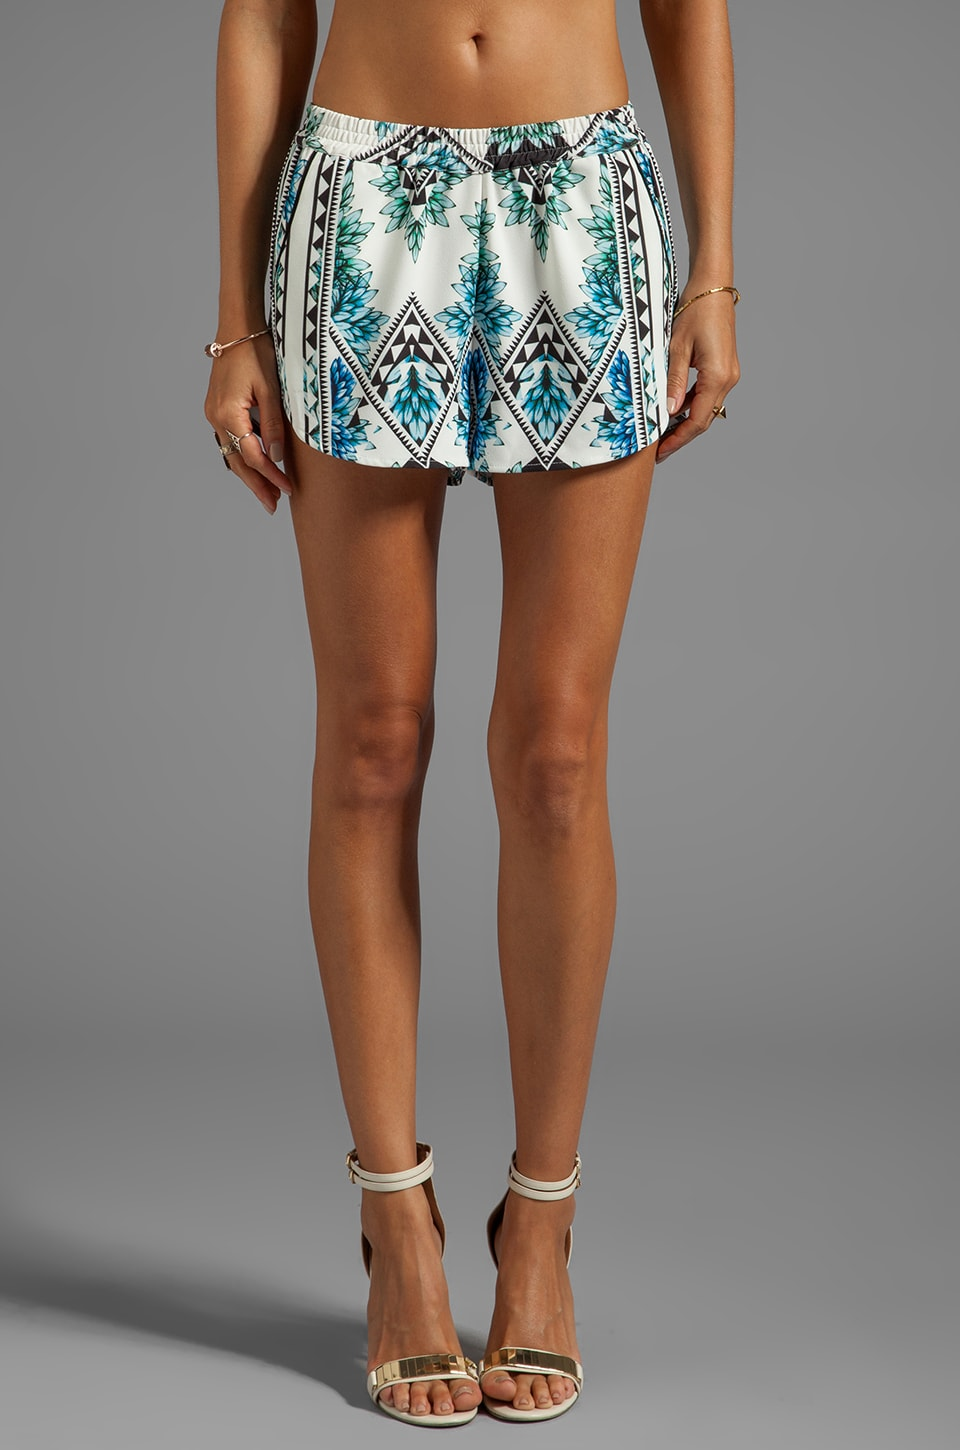 Finders Keepers Wonderful Remark Shorts in Aztec Floral Print Blue/Black